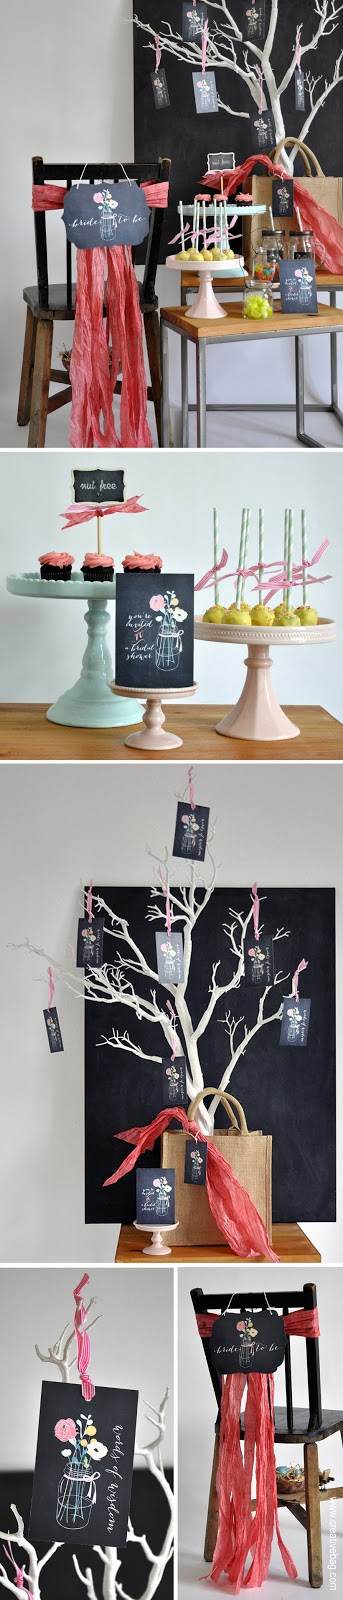 bridal shower party ideas from Creative Bag